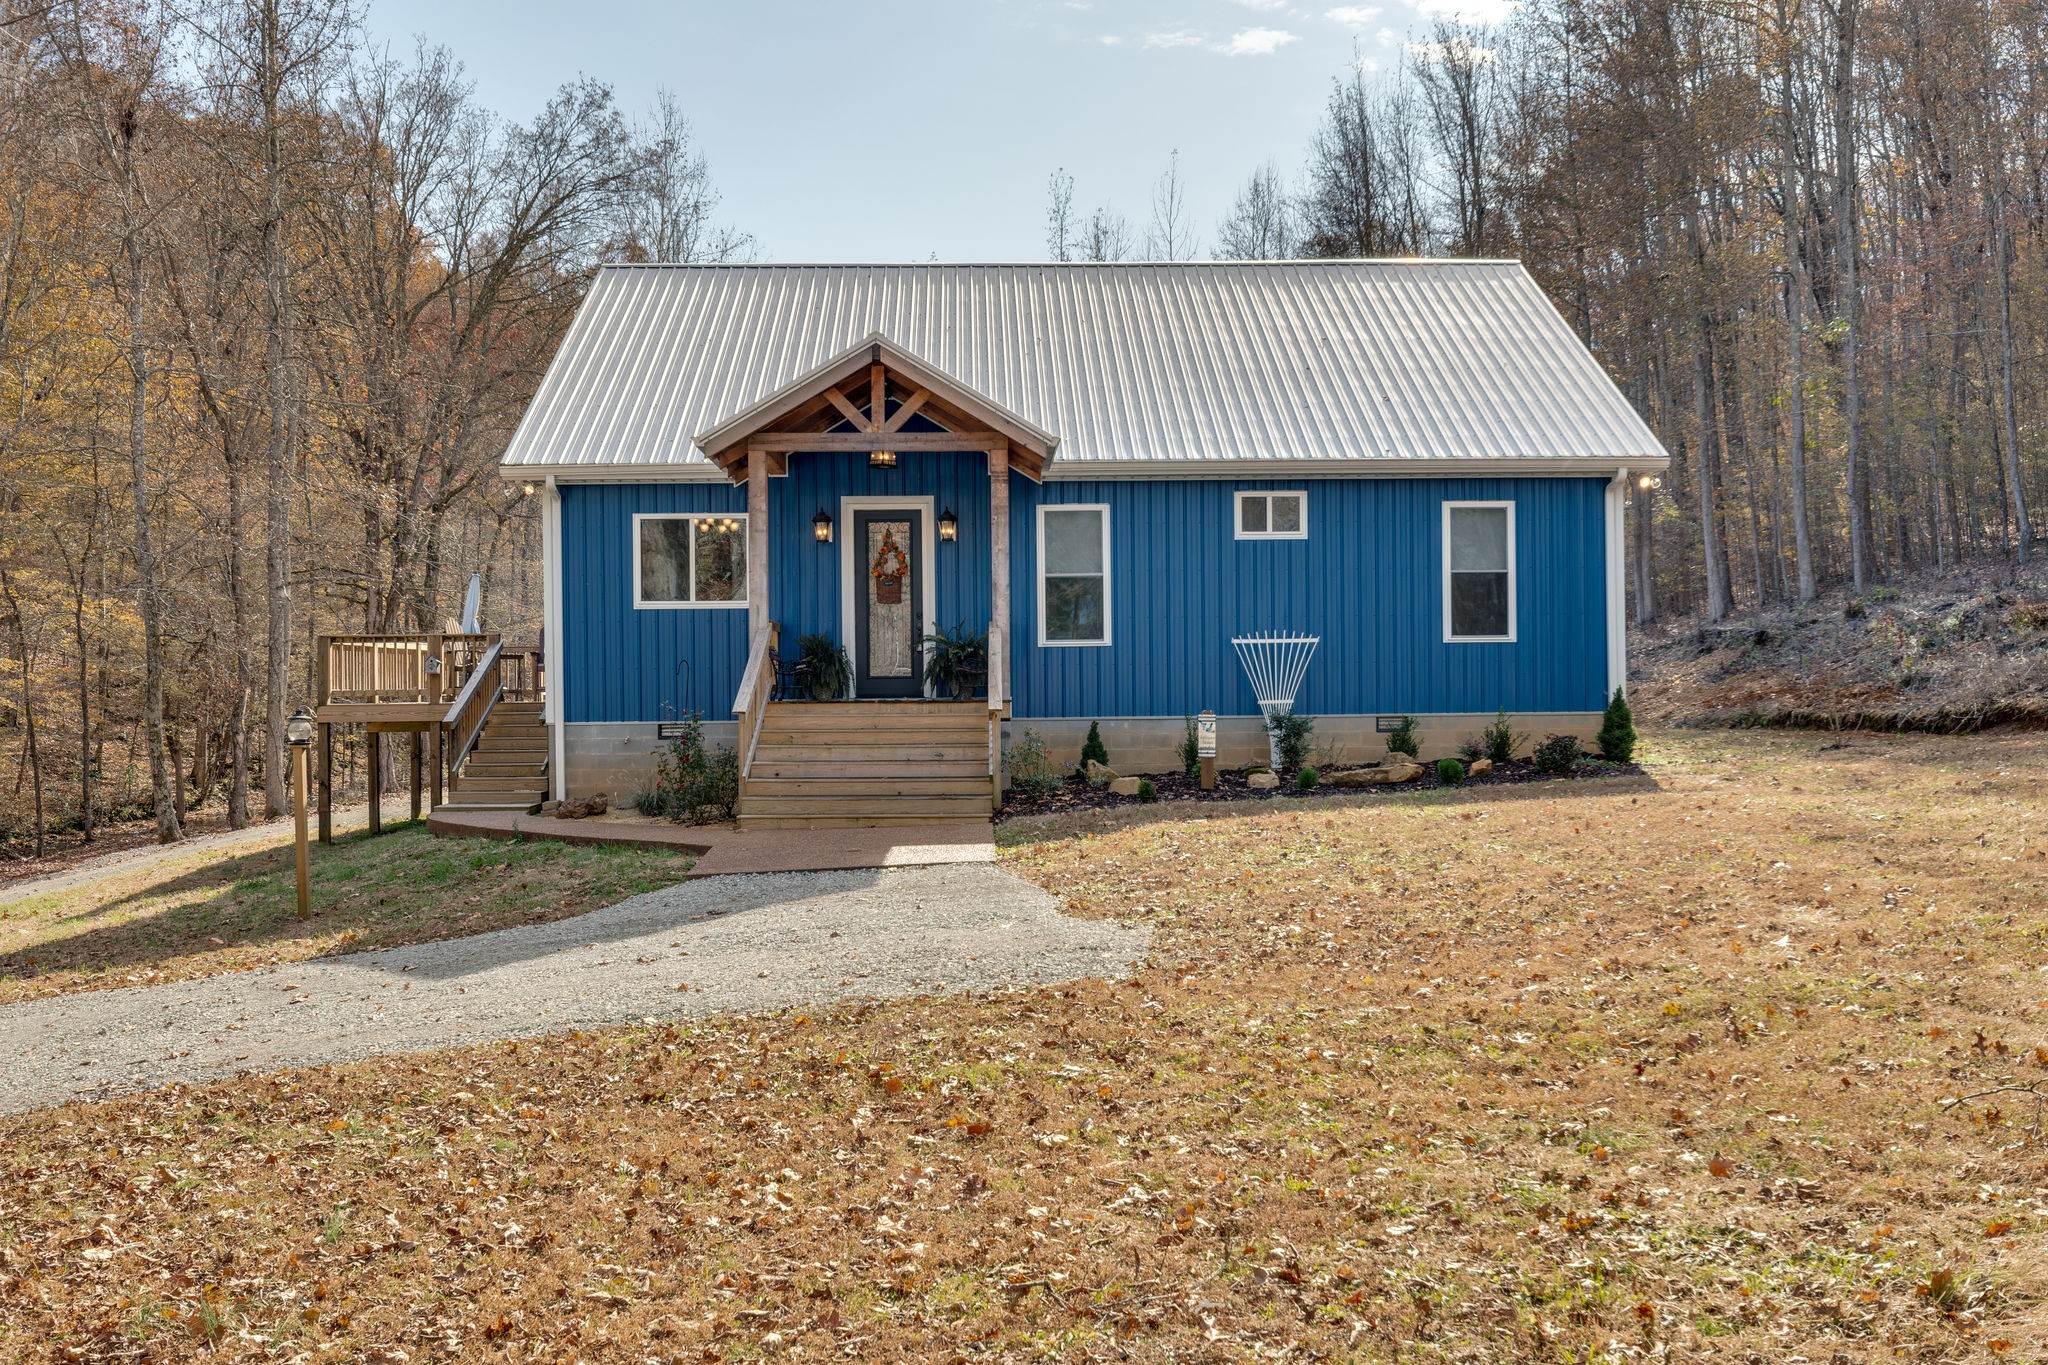 4279 Buffalo Rd, Hohenwald, TN 38462 - Hohenwald, TN real estate listing